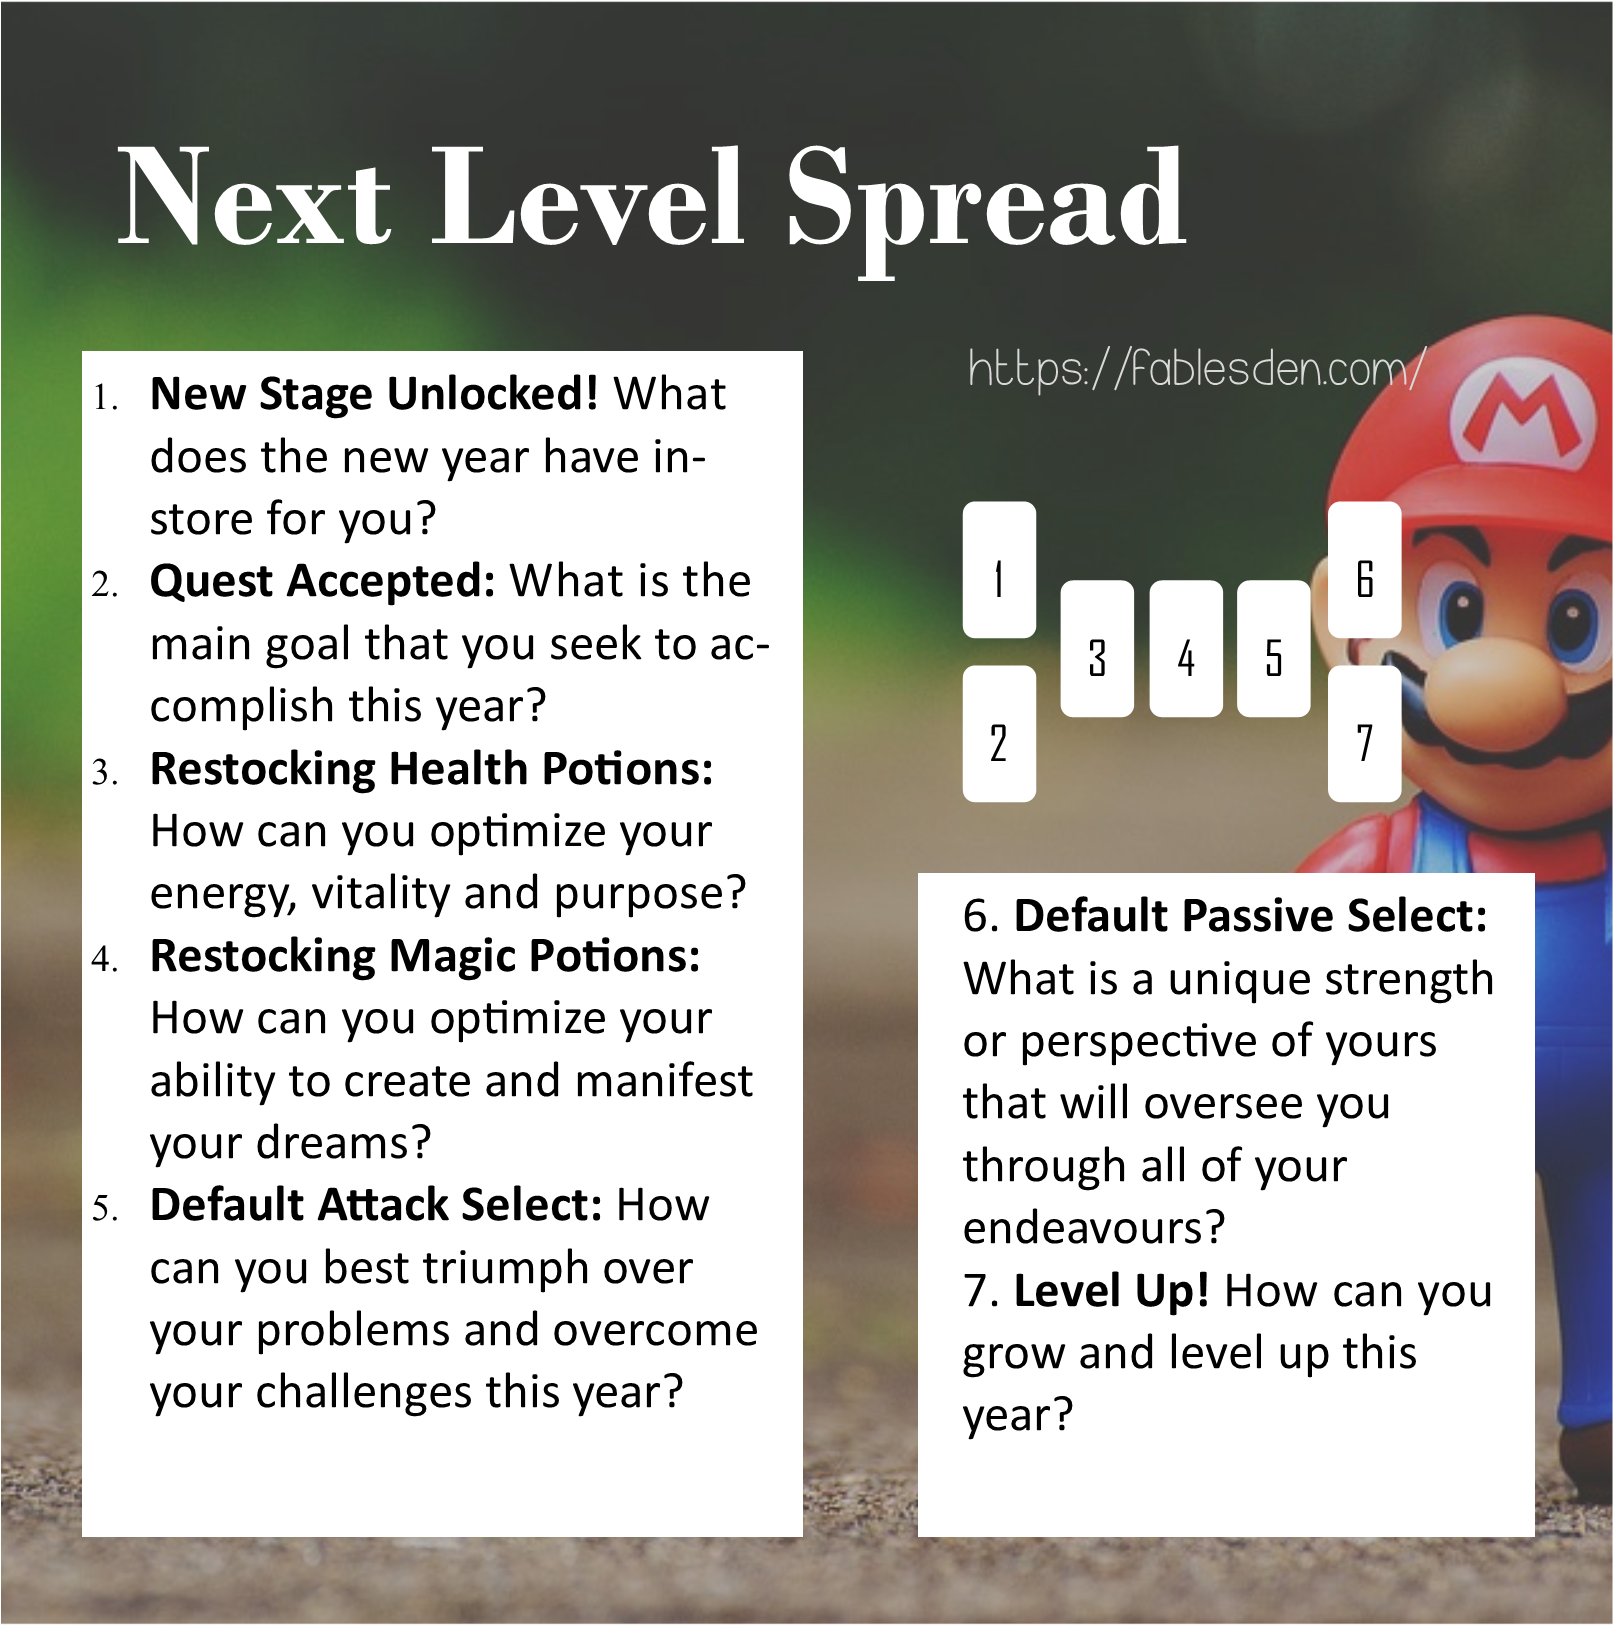 Next Level Spread.png